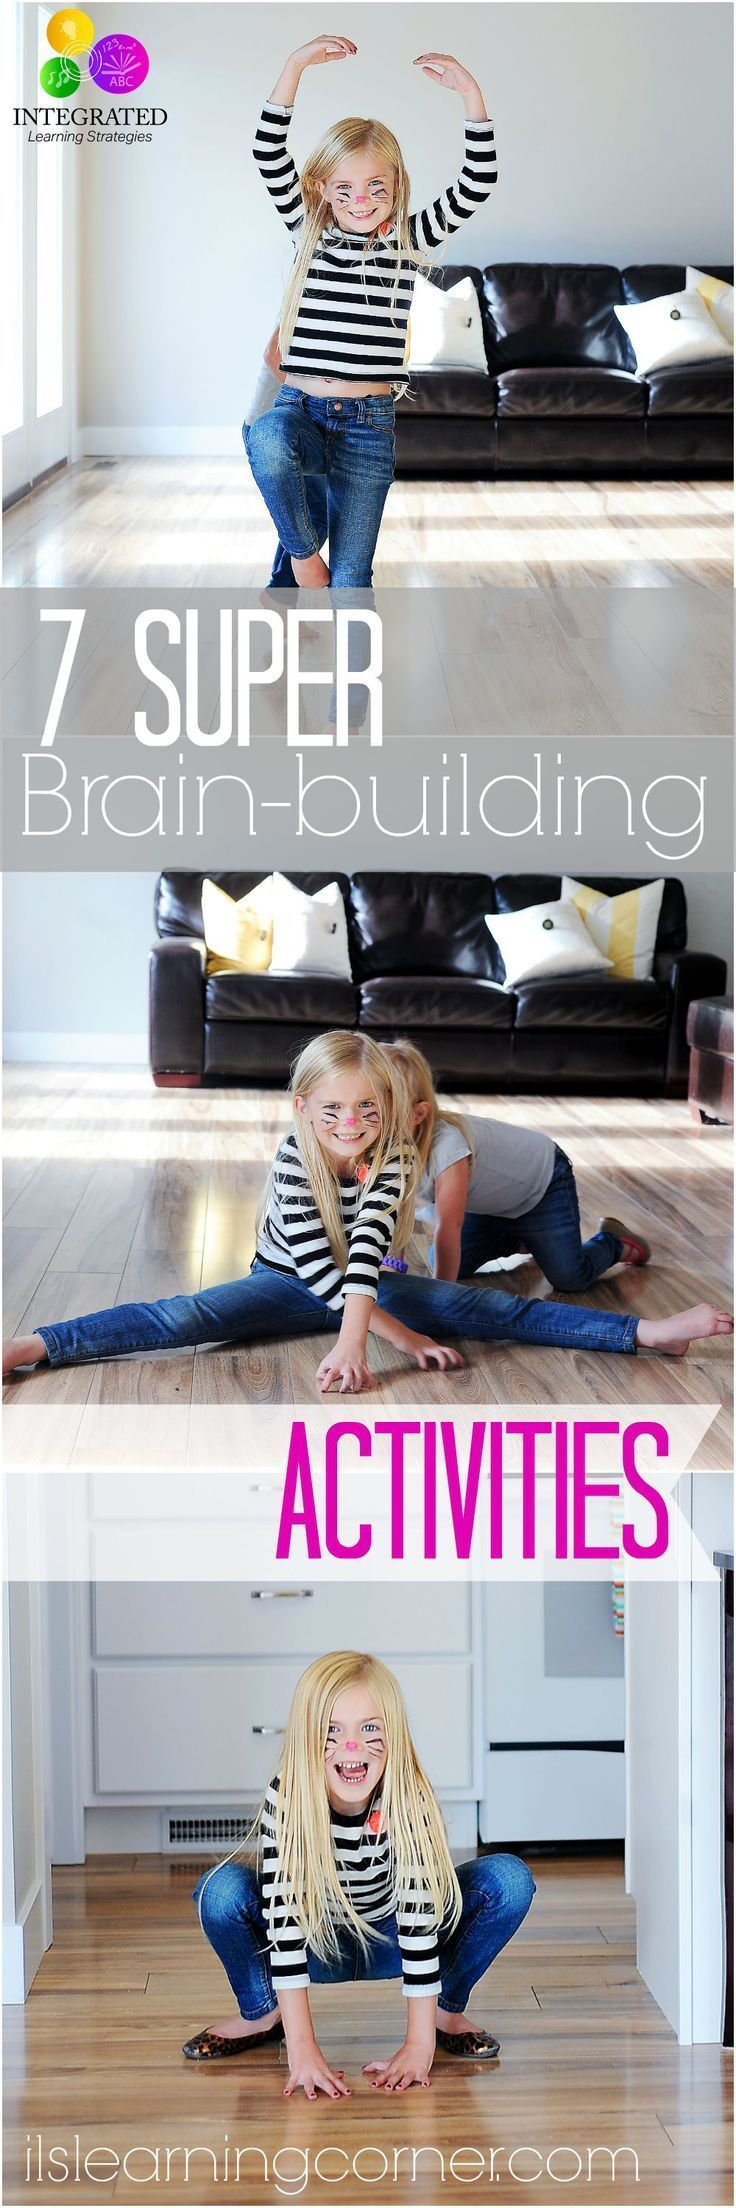 7 Super Brain-building Gross Motor Activities for Kids | ilslearningcorner.com #kidsactivities